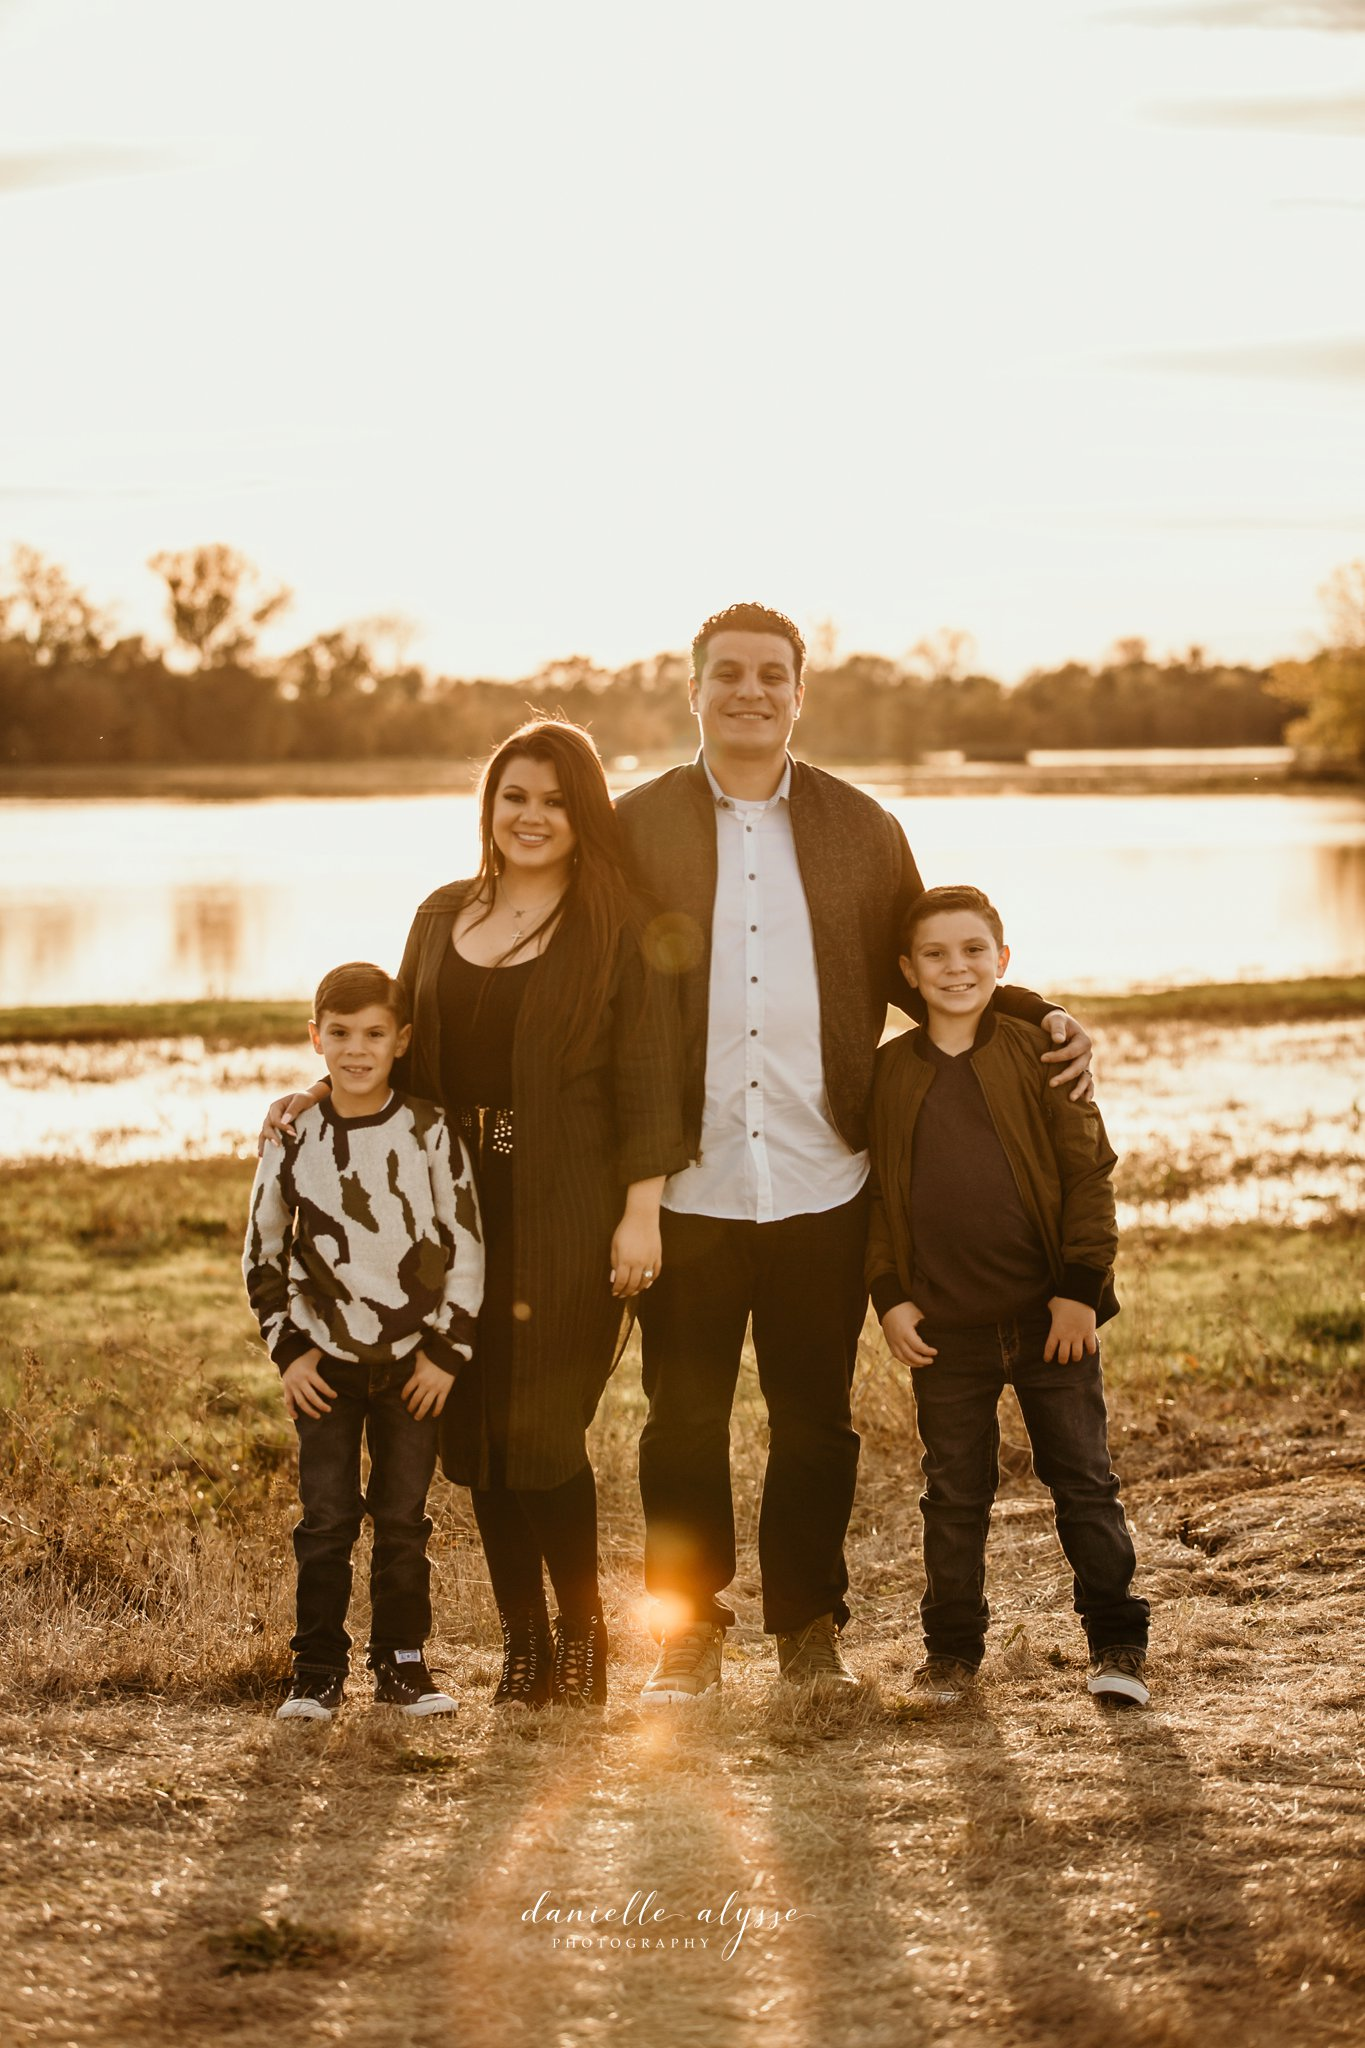 181125_fall_family_portrait_cosumnes_river_preserve_brittney_danielle_alysse_photography_20_WEB.jpg